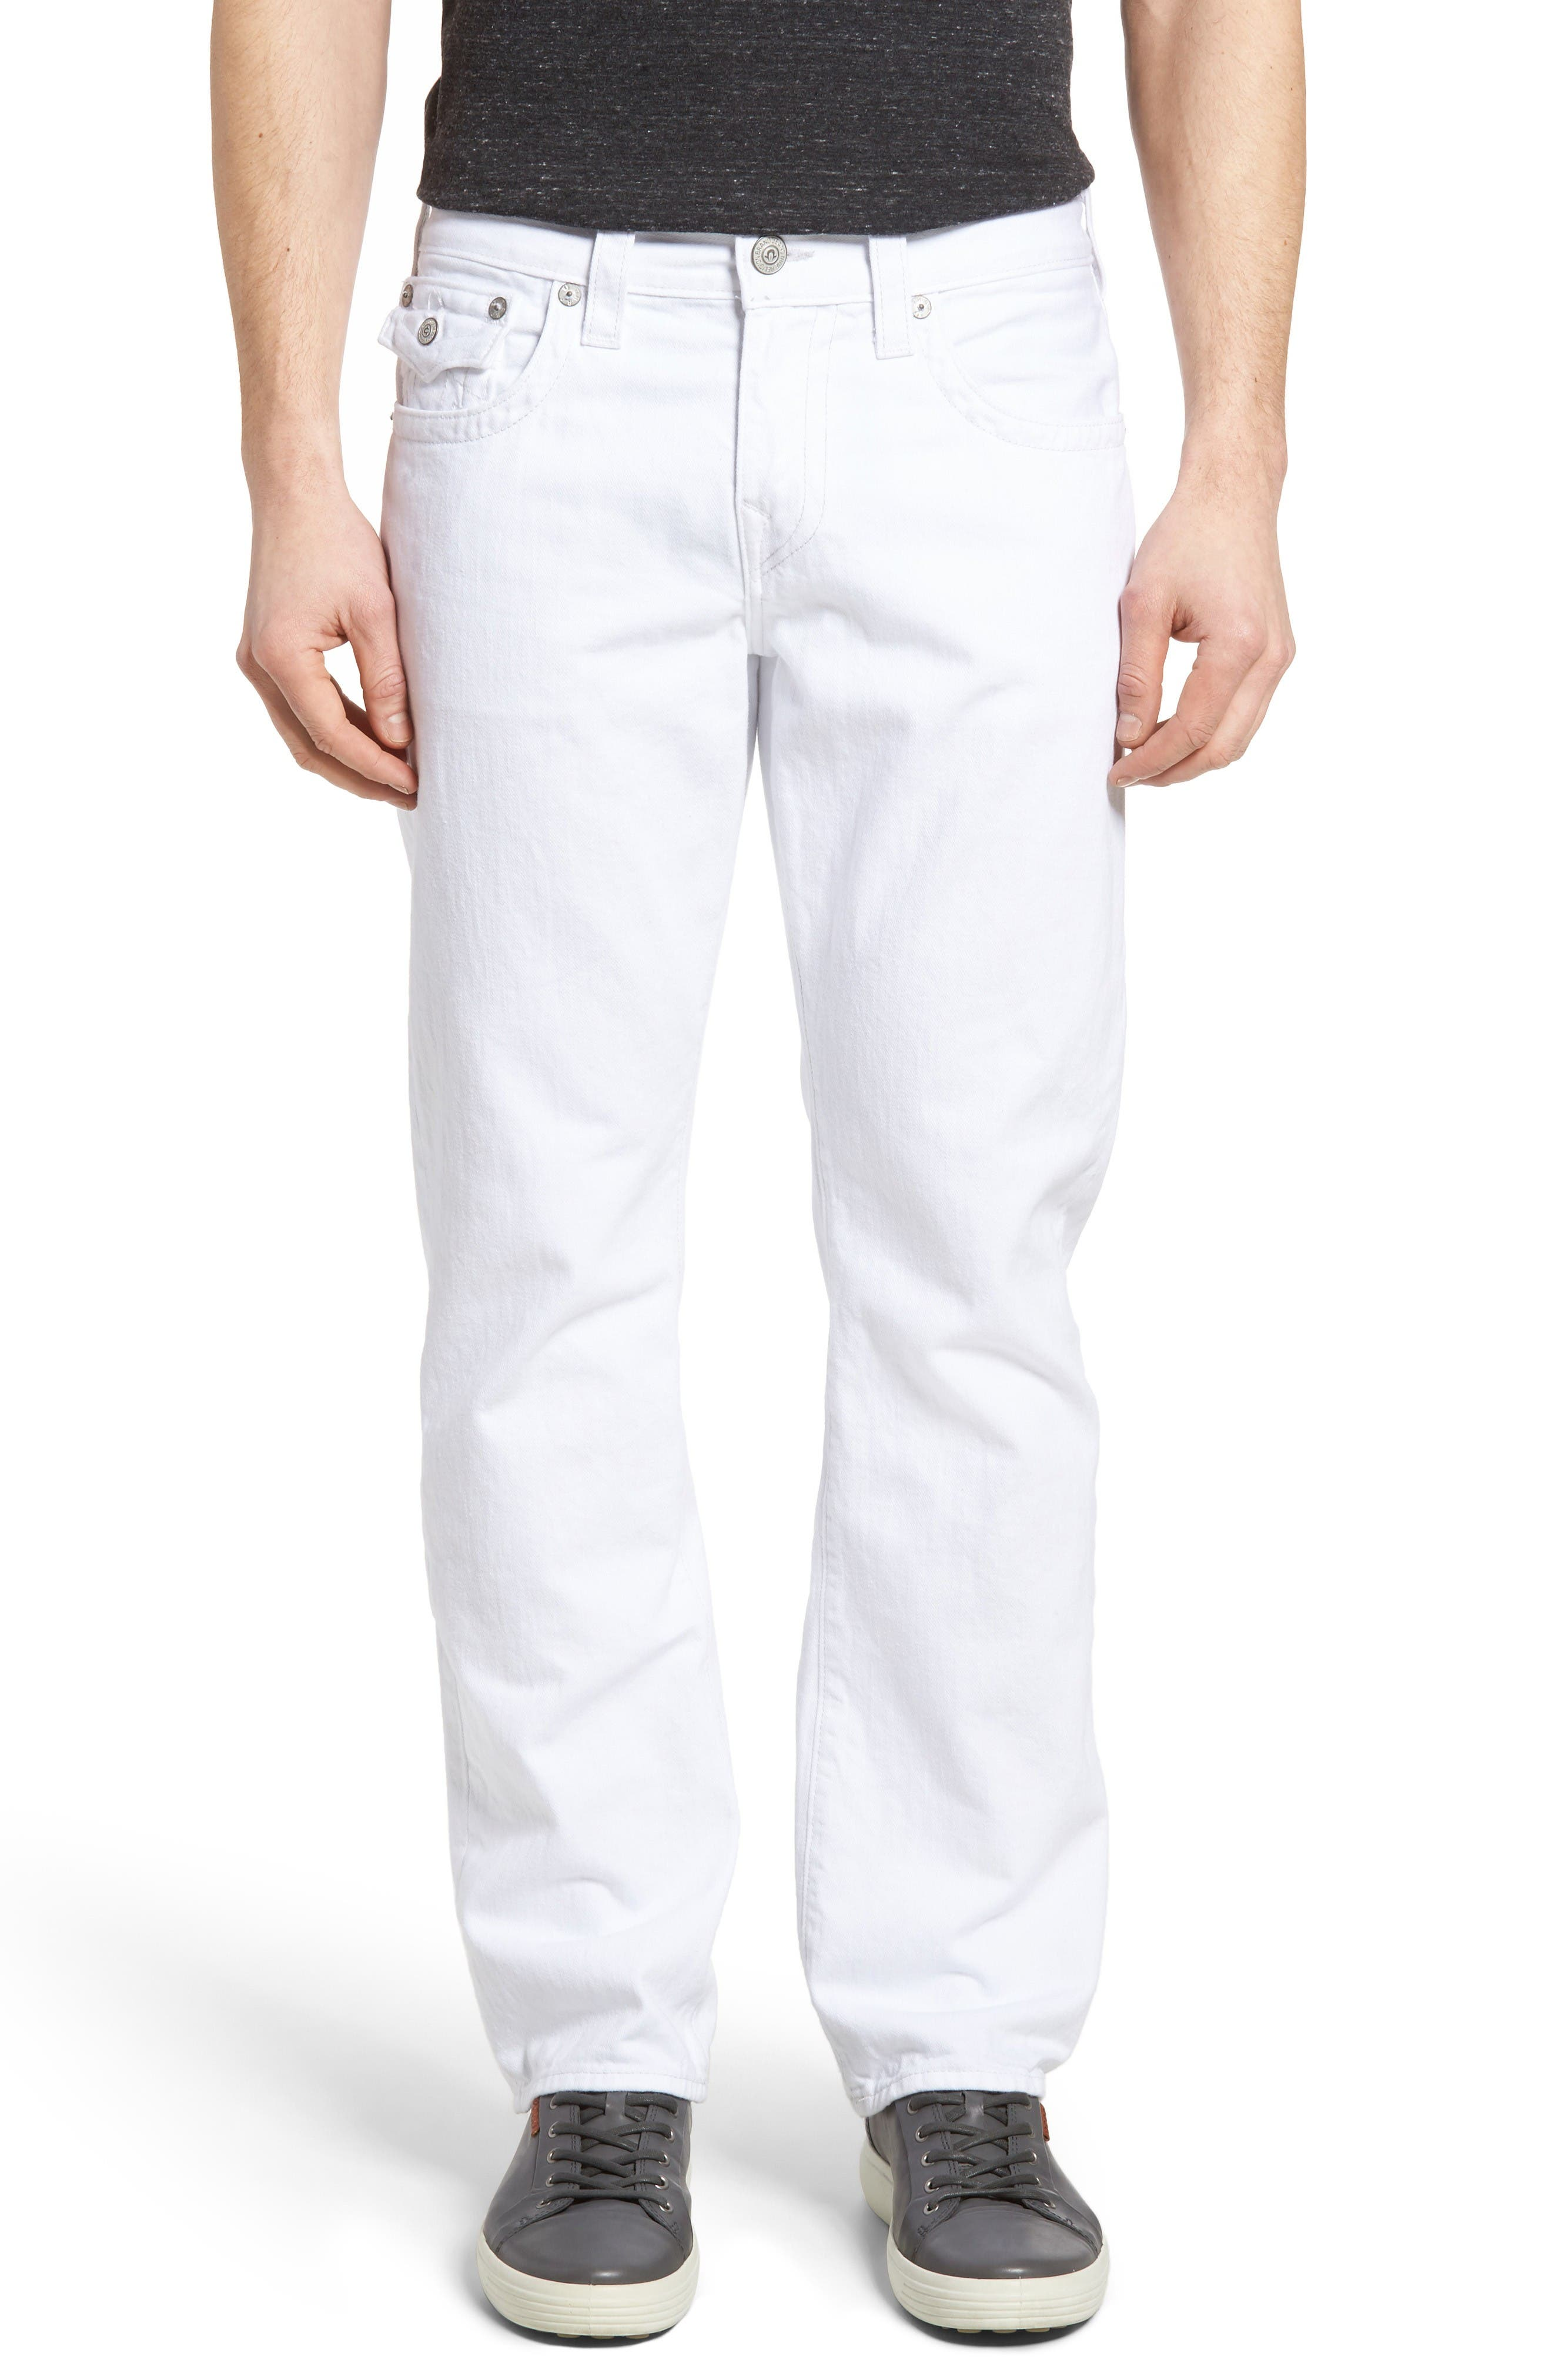 Main Image - True Religion Brand Jeans Ricky Relaxed Fit Jeans (Optic White)